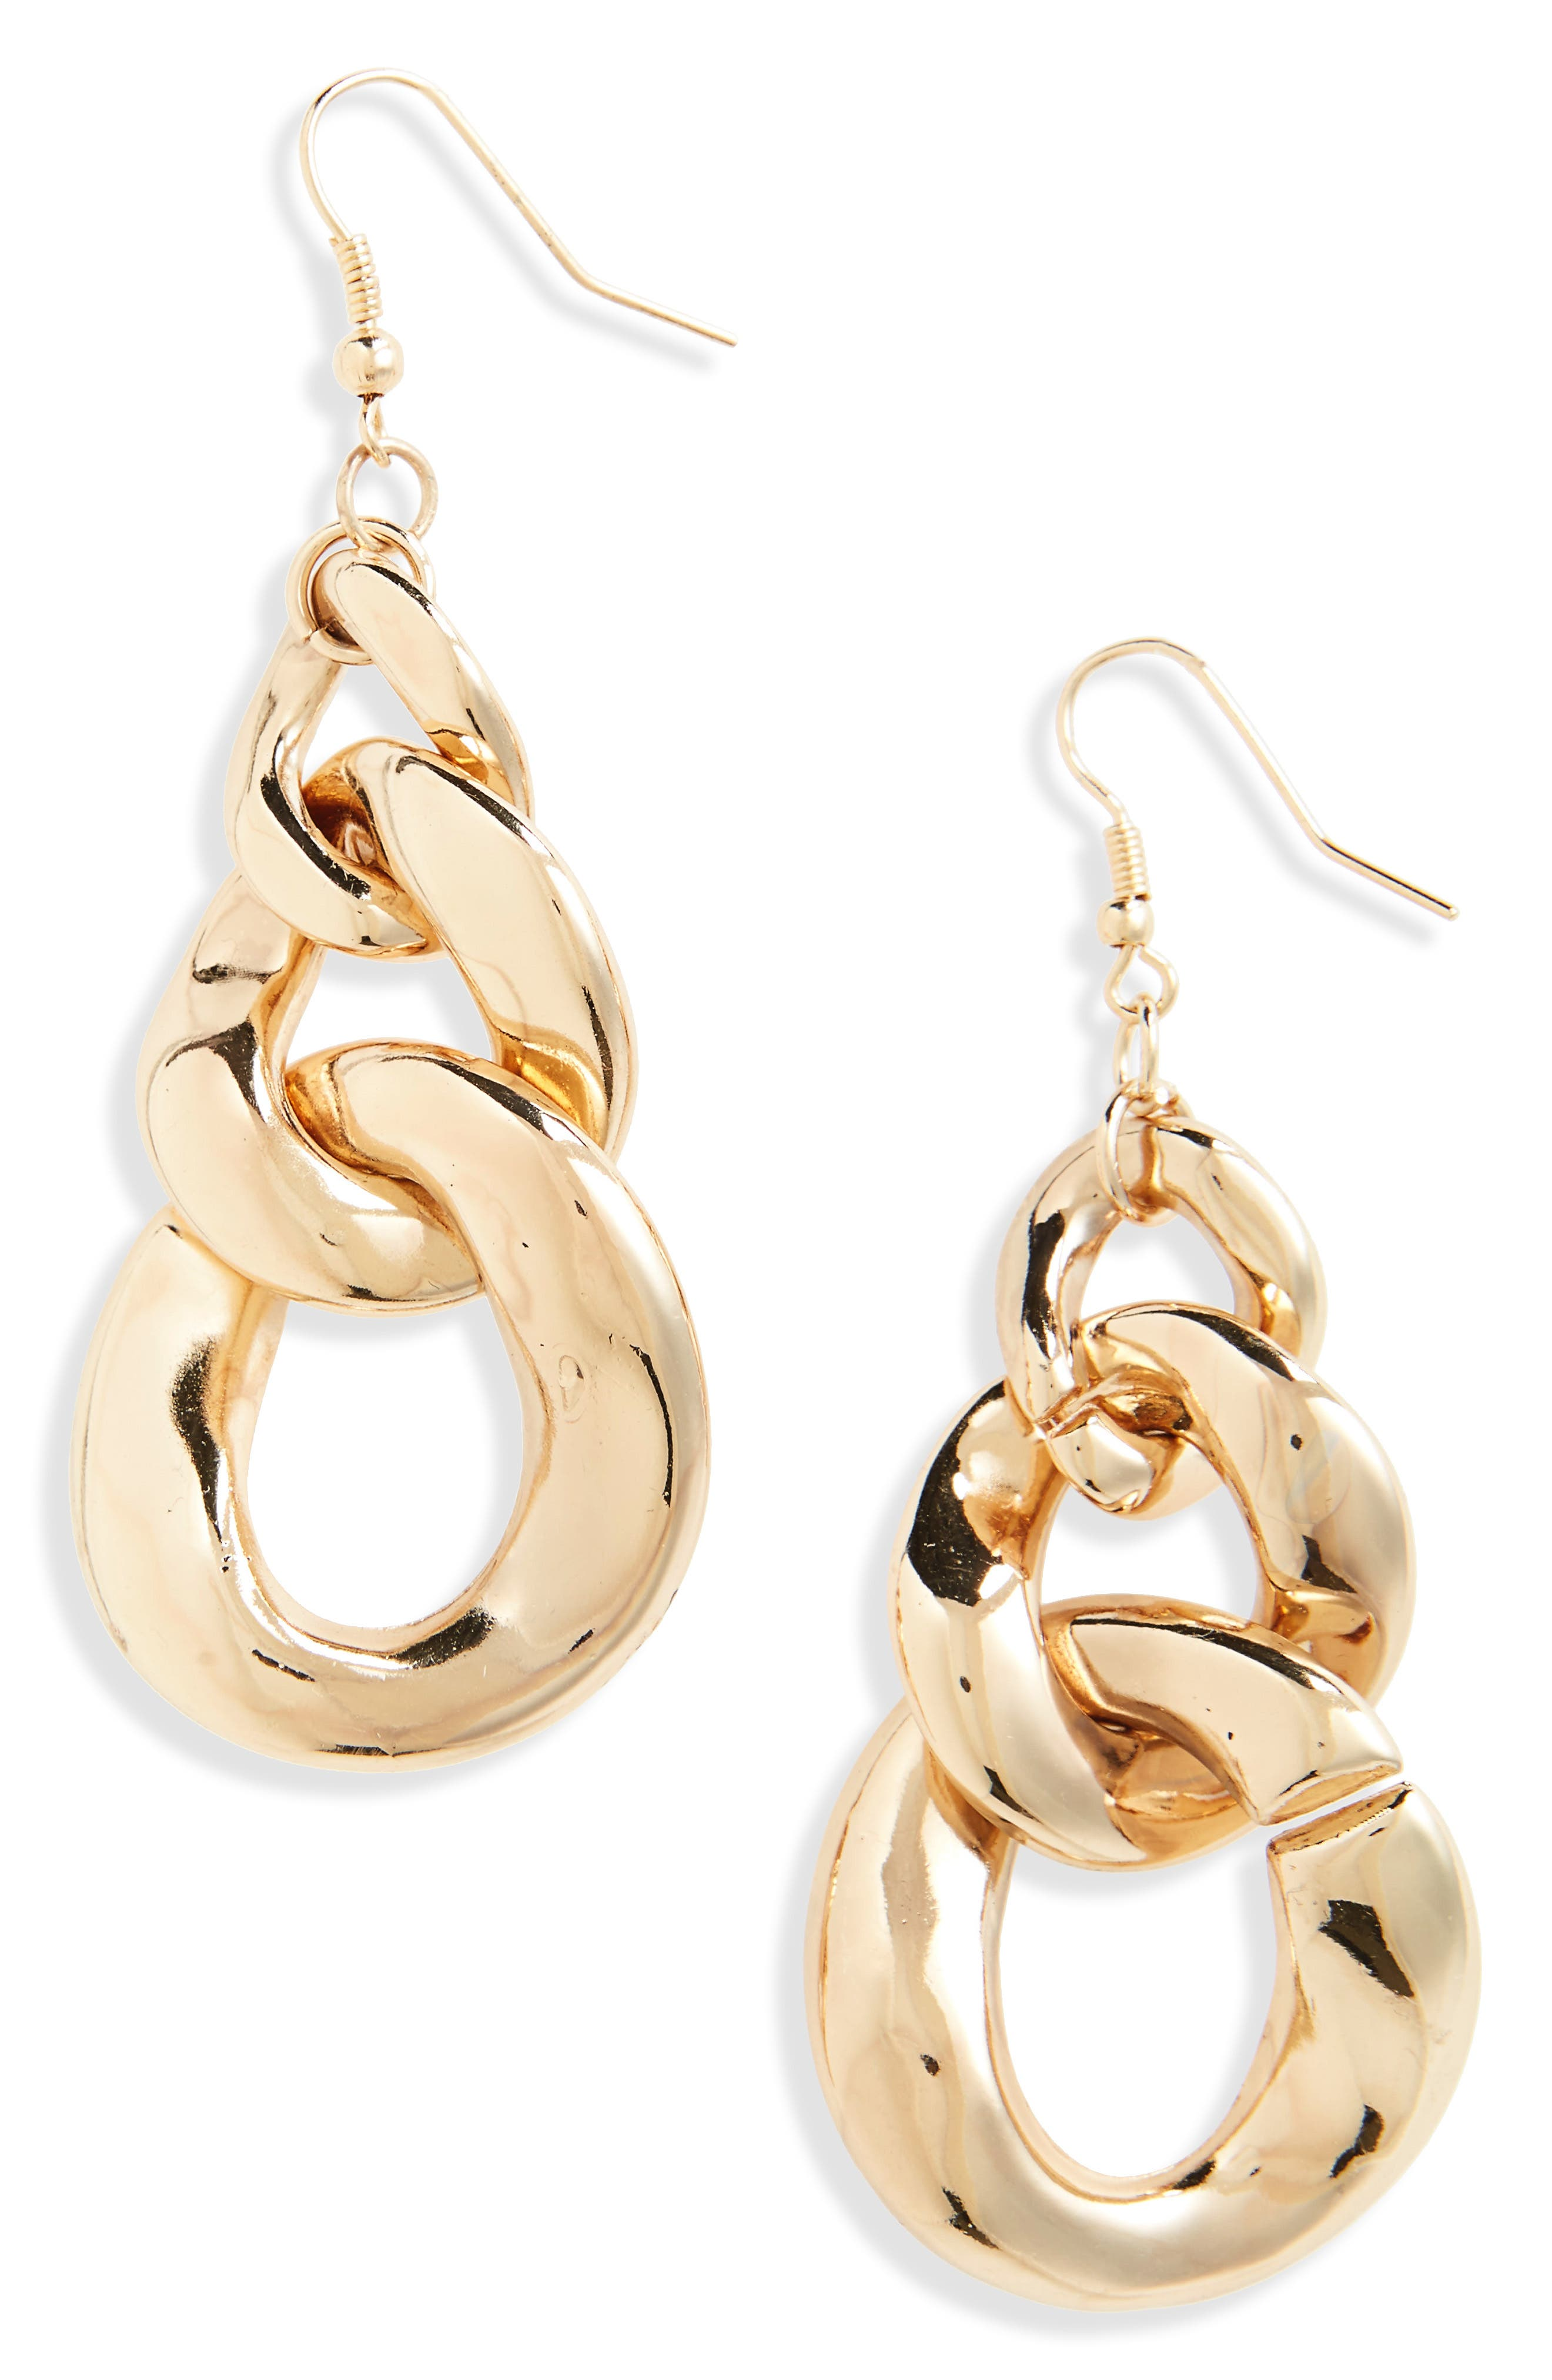 Short Chain Earrings,                             Main thumbnail 1, color,                             710